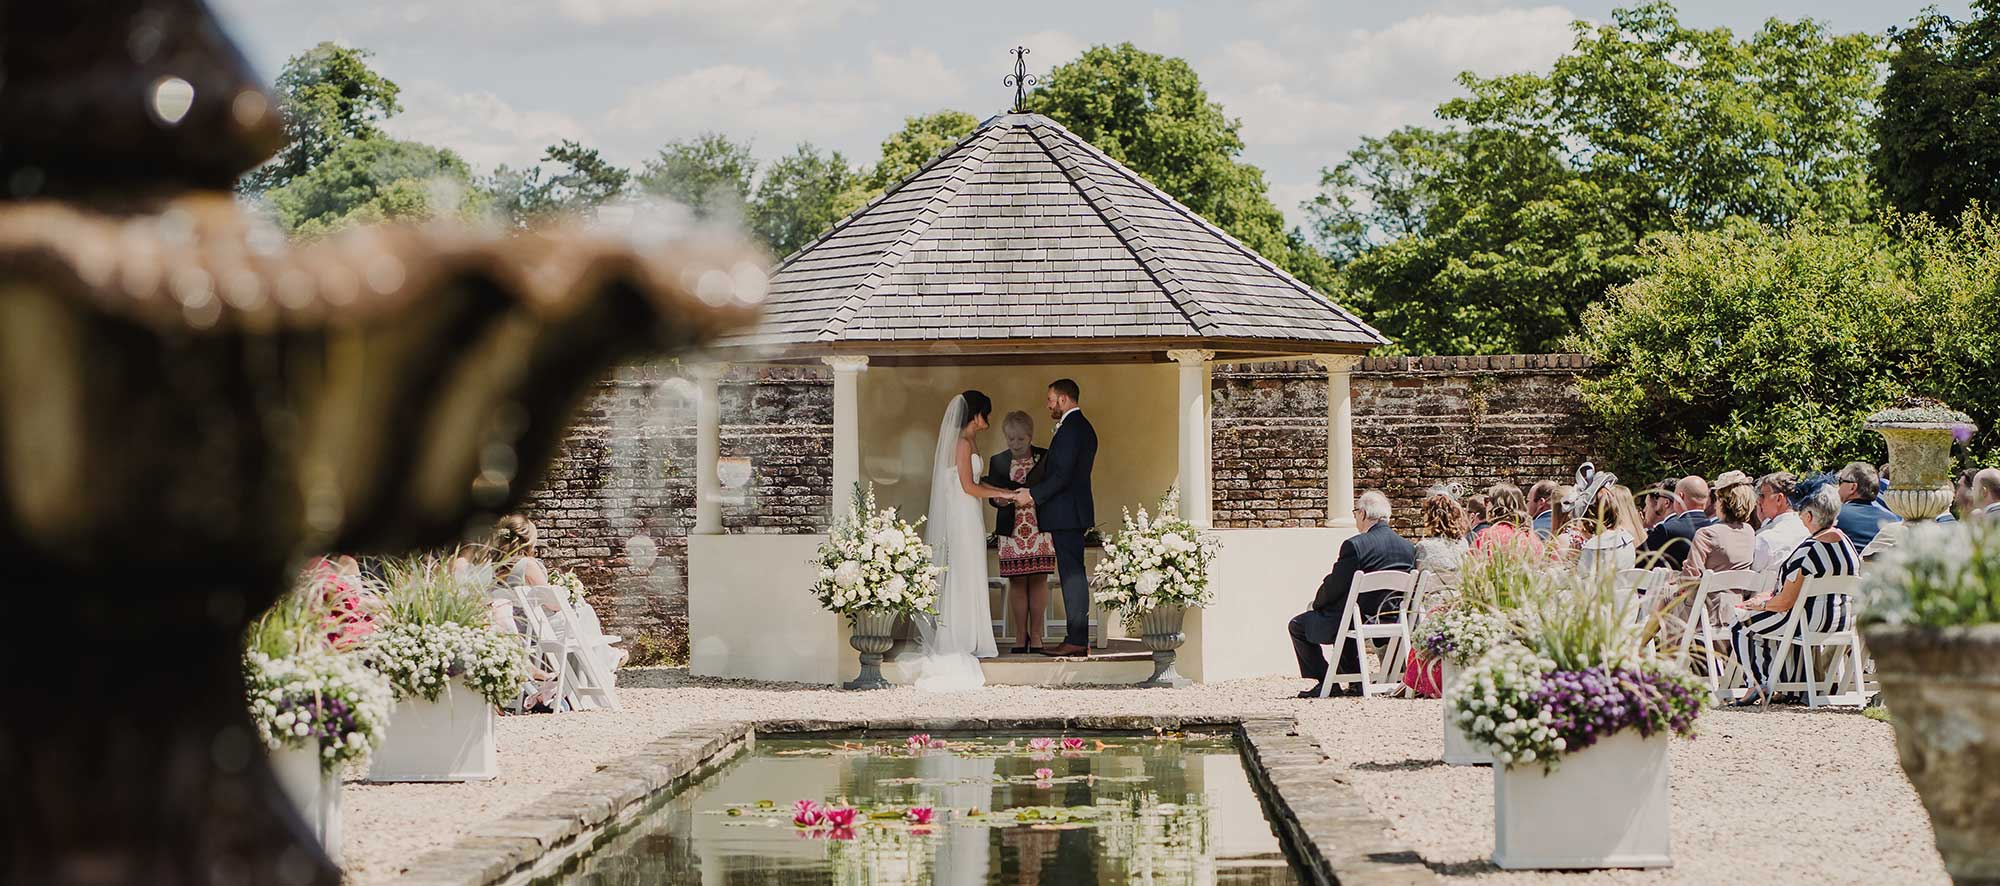 Bride and groom in Italian Gardens at Arley House